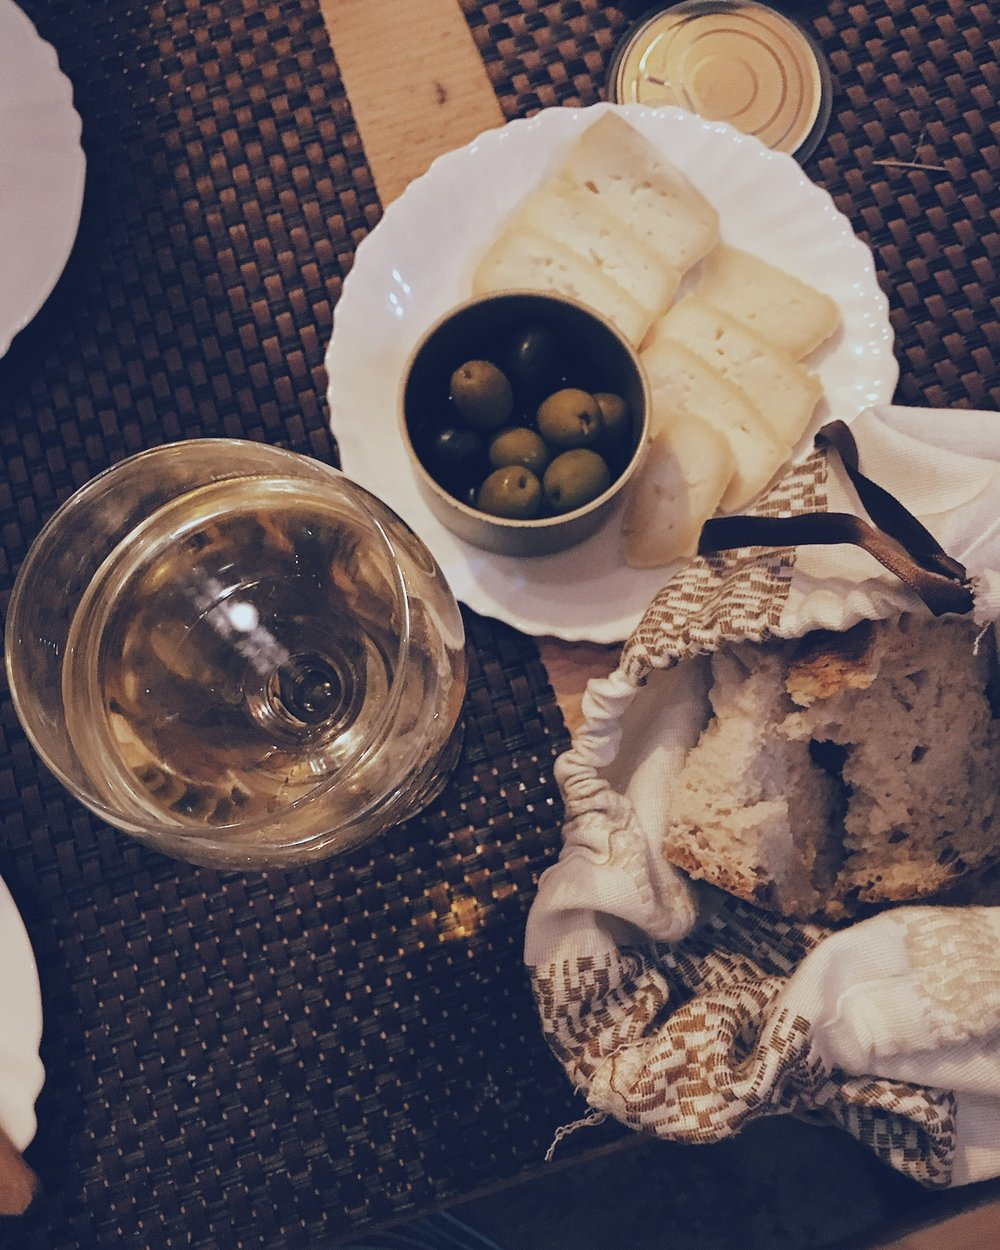 Delicious crusty bread, tasty soft cheese, olives, and a strong white wine